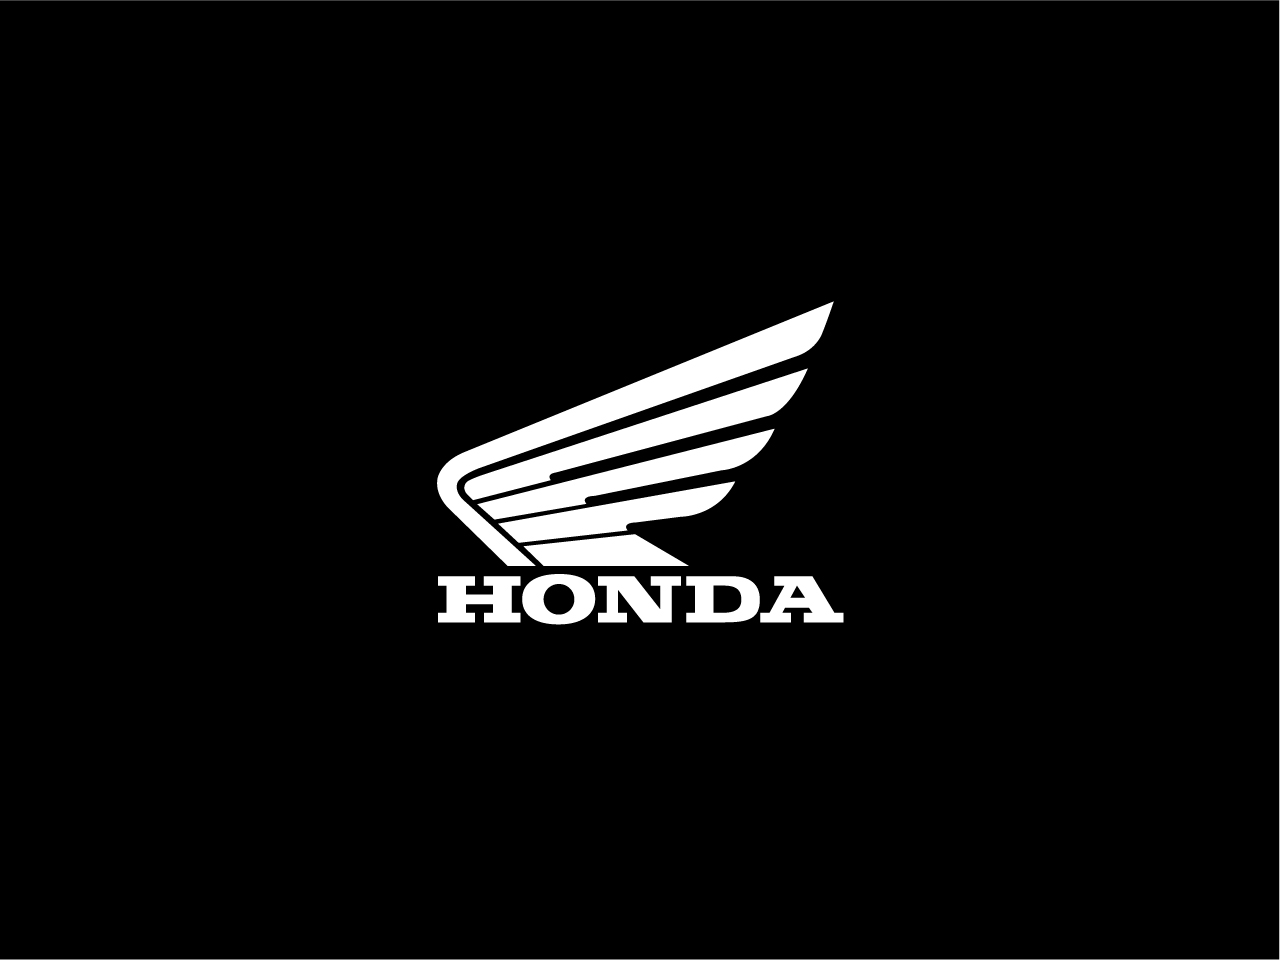 Honda Phone Wallpapers Honda Wing Logos